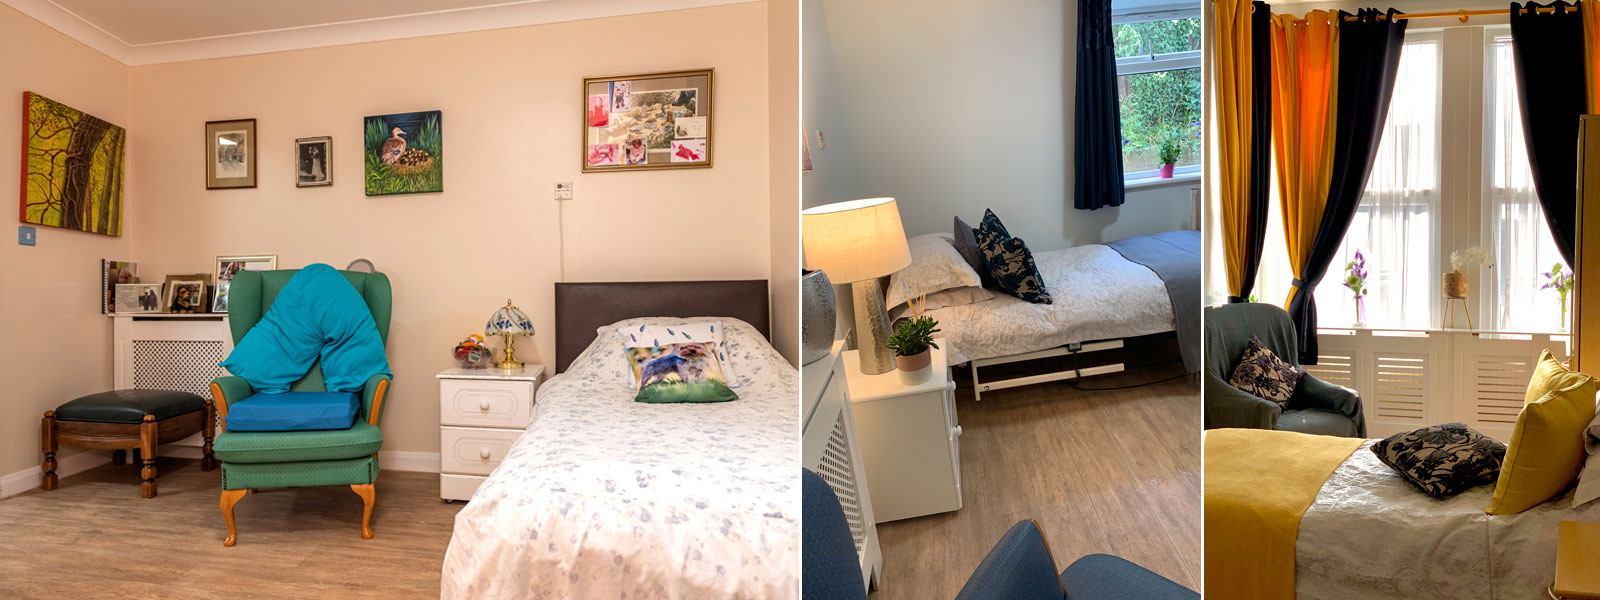 Residents can personalise their rooms with family photos, favourite items of furniture, their own TV etc.